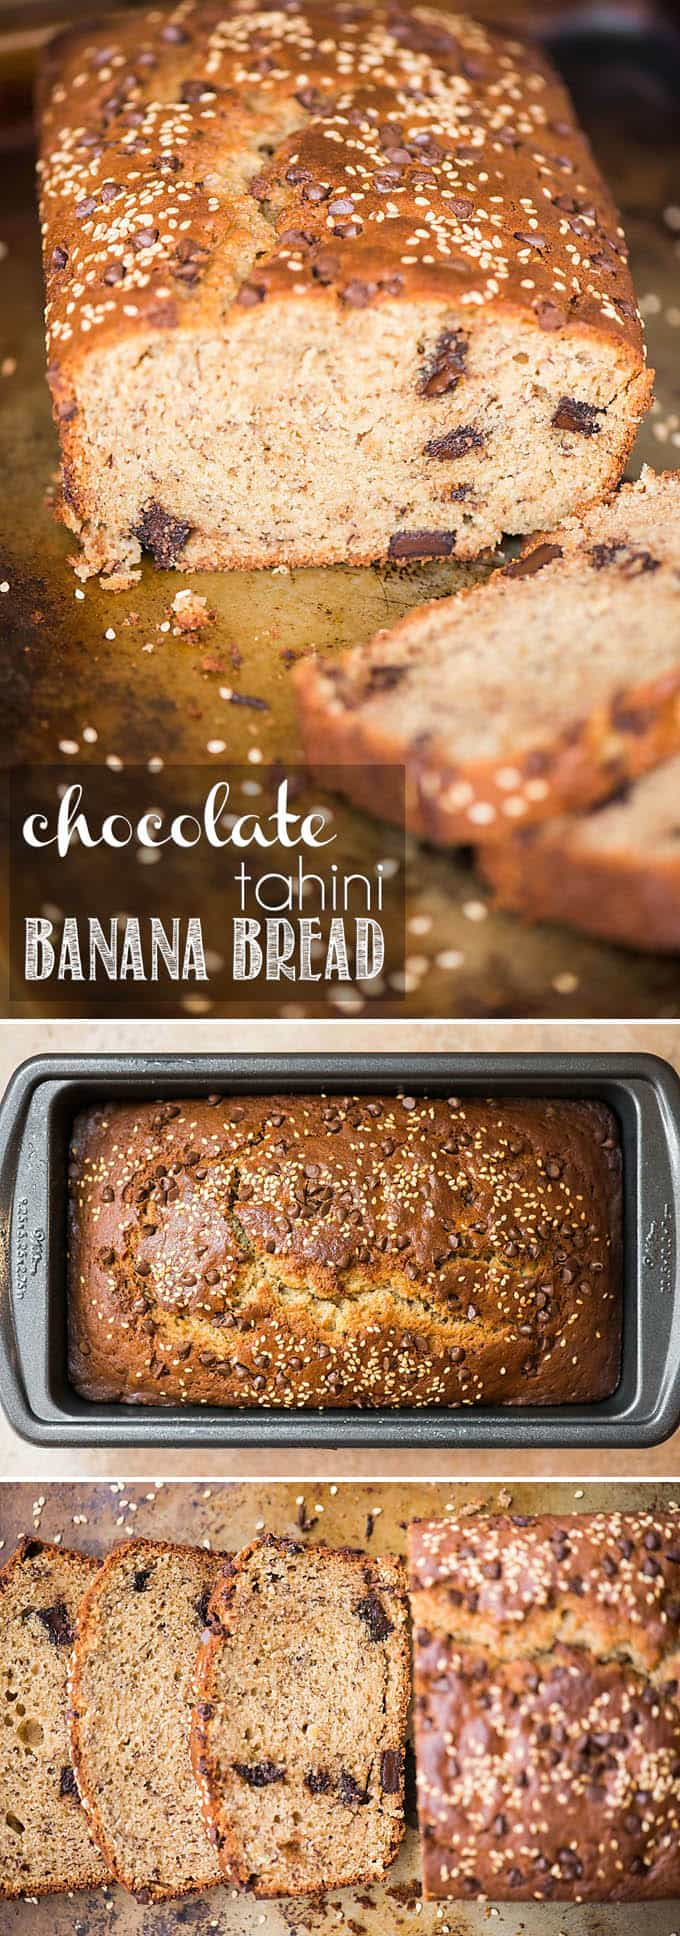 Chocolate Tahini Banana Bread combines chocolate and sesame with the sweet moistness of banana in this amazing quick bread for breakfast or a tasty snack!